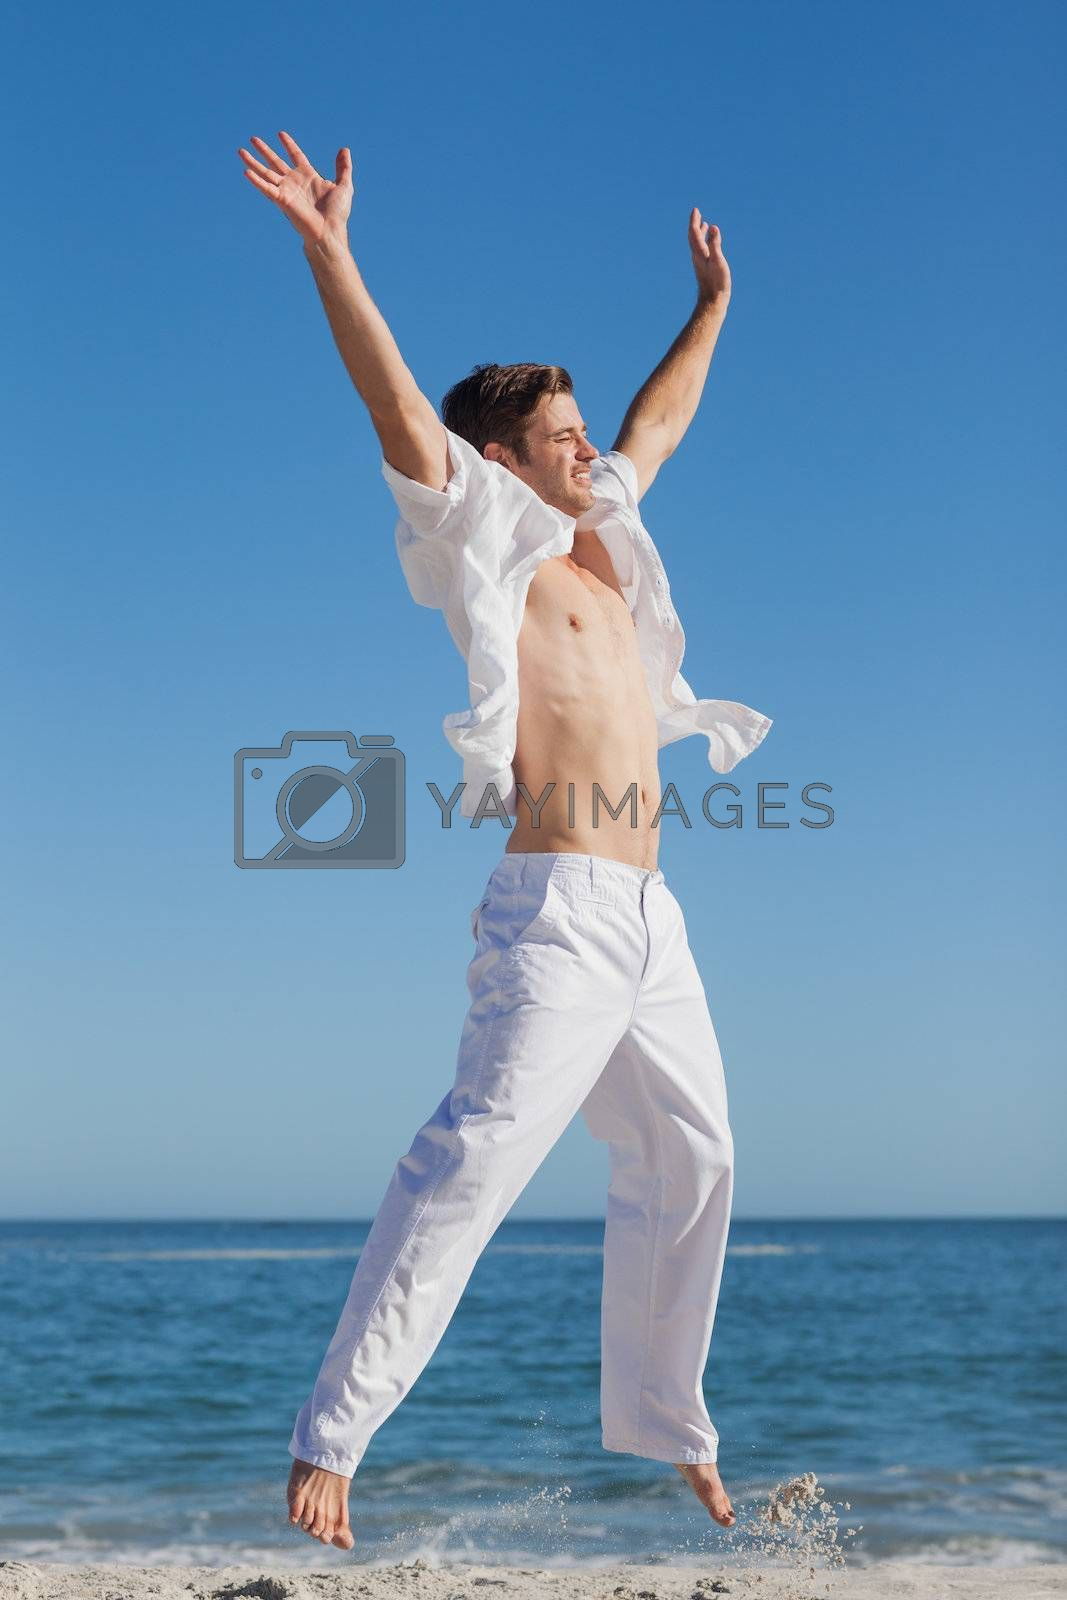 Attractive man jumping on beach by Wavebreakmedia